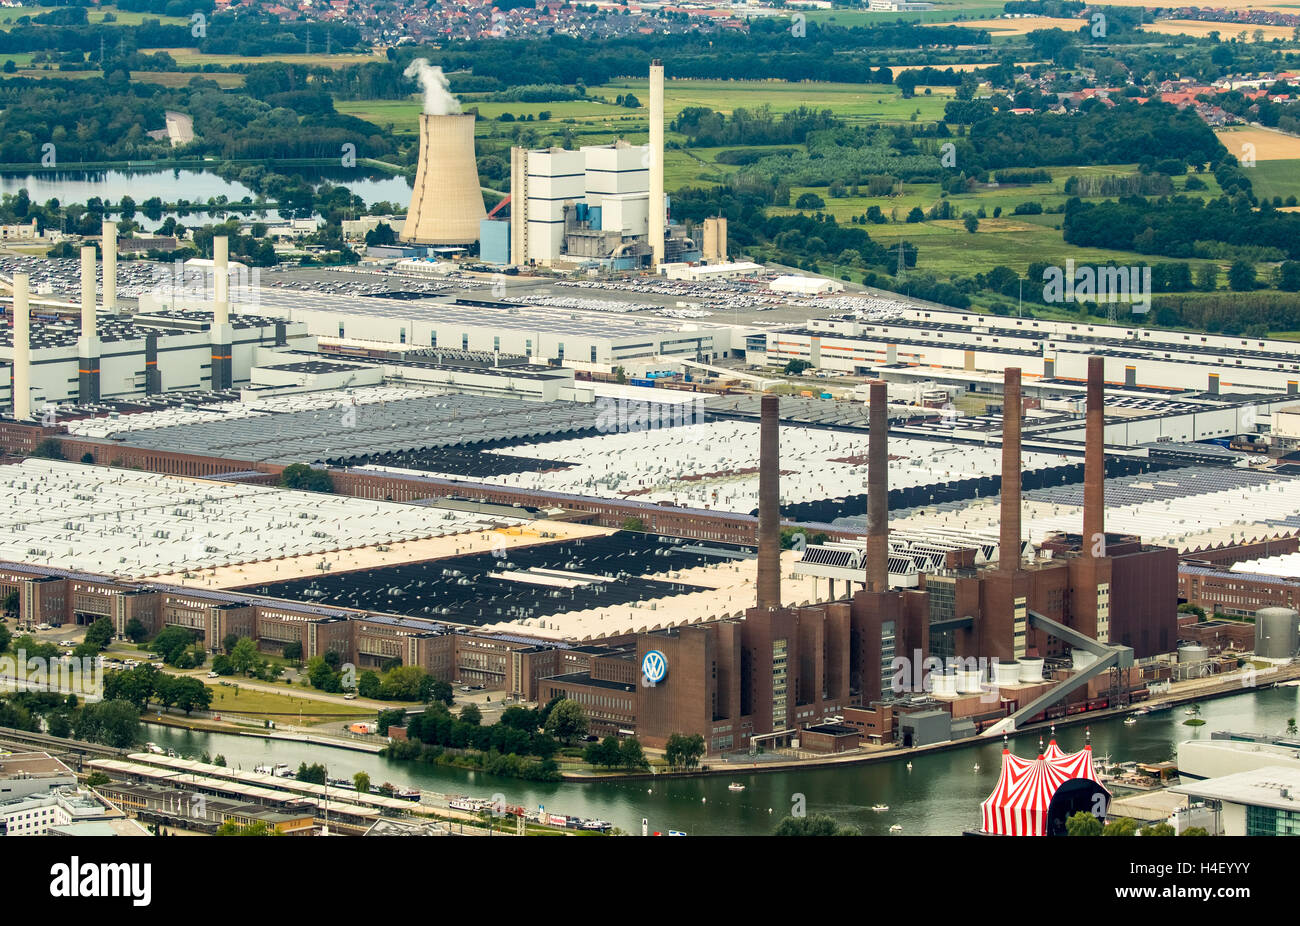 Aerial view, Volkswagen factory with heating plant VW Südstraße, Lower Saxony, Germany - Stock Image